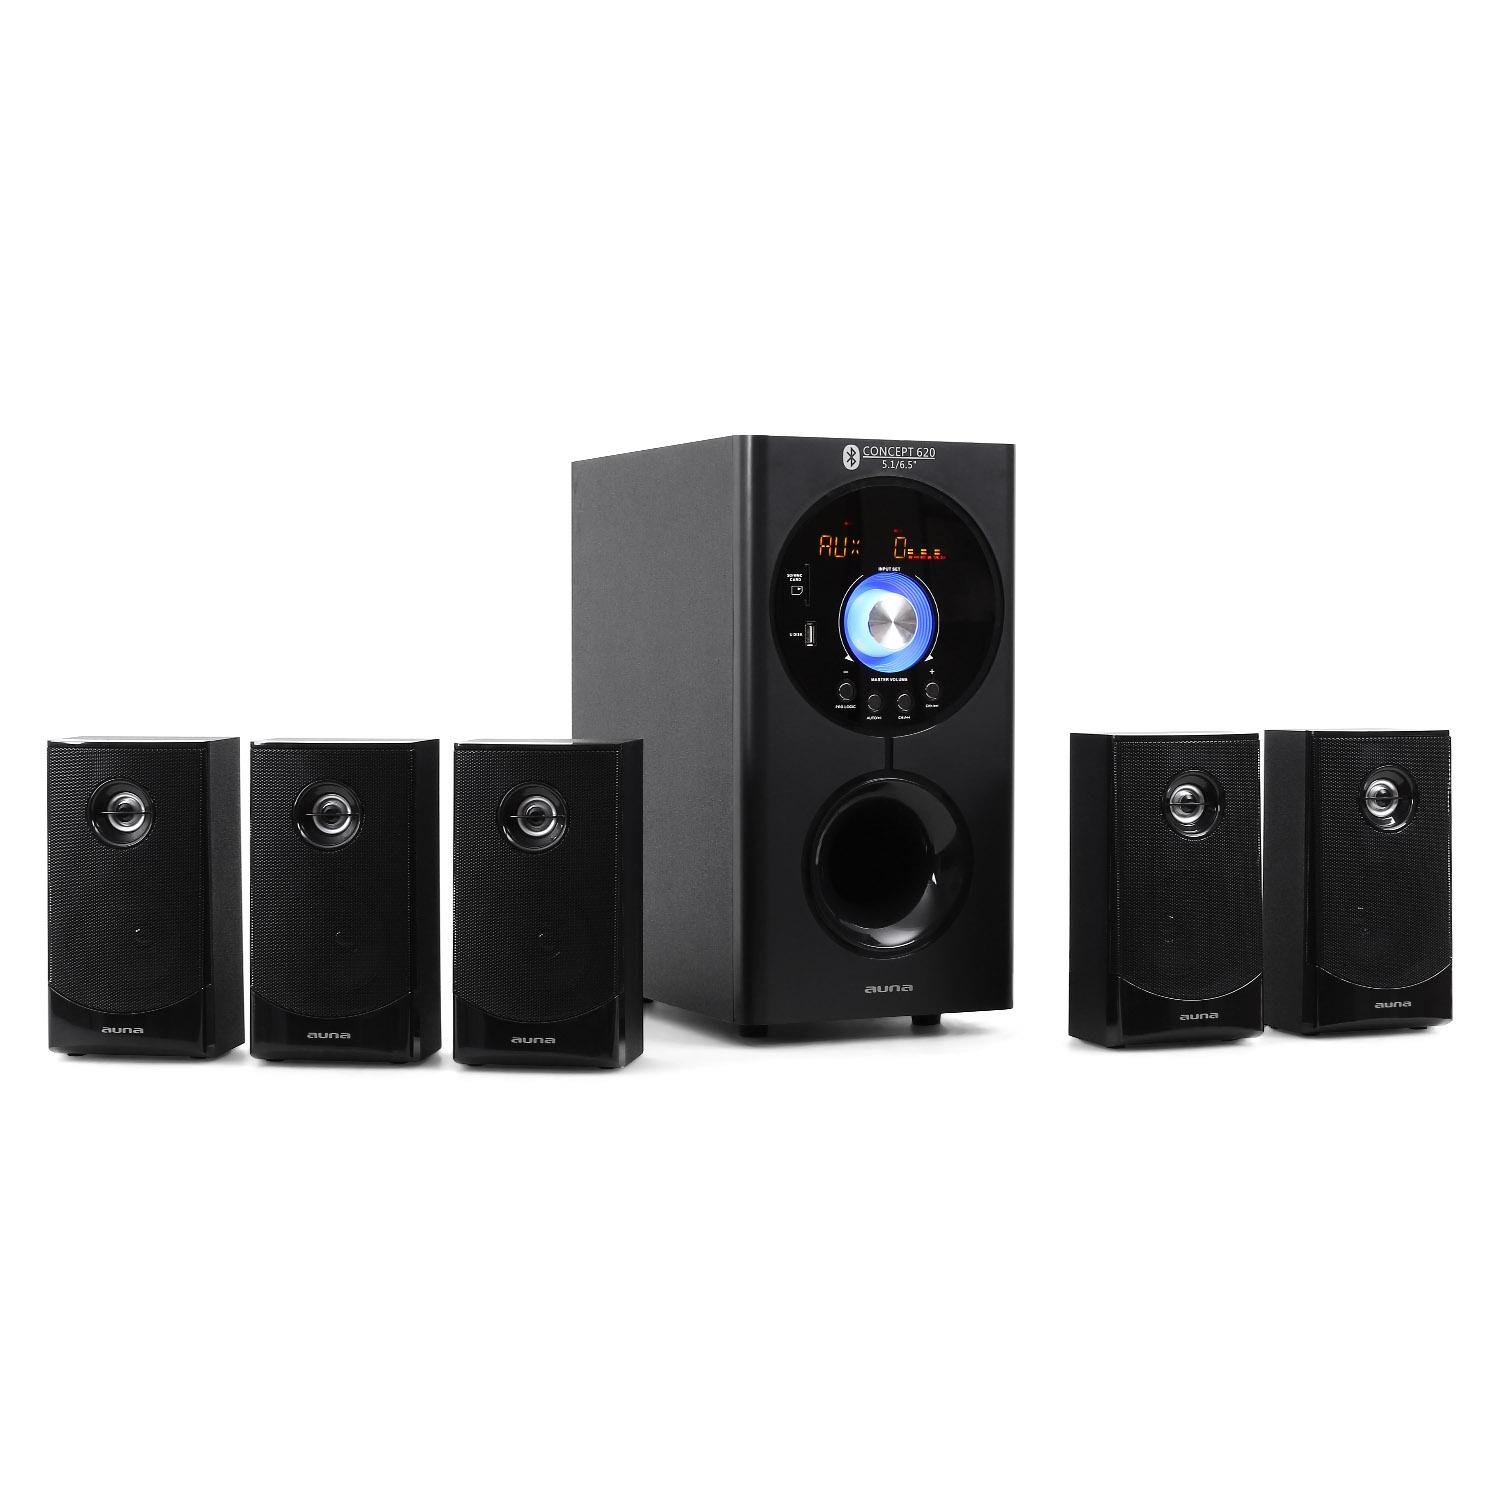 auna Areal Active 620 • 5.1 Surround Sound System • Home Cinema System • Bass Reflex • 5 Satellite Speakers • Active 6.5'' subwoofer • Bluetooth • USB Port • SD • AUX • Black